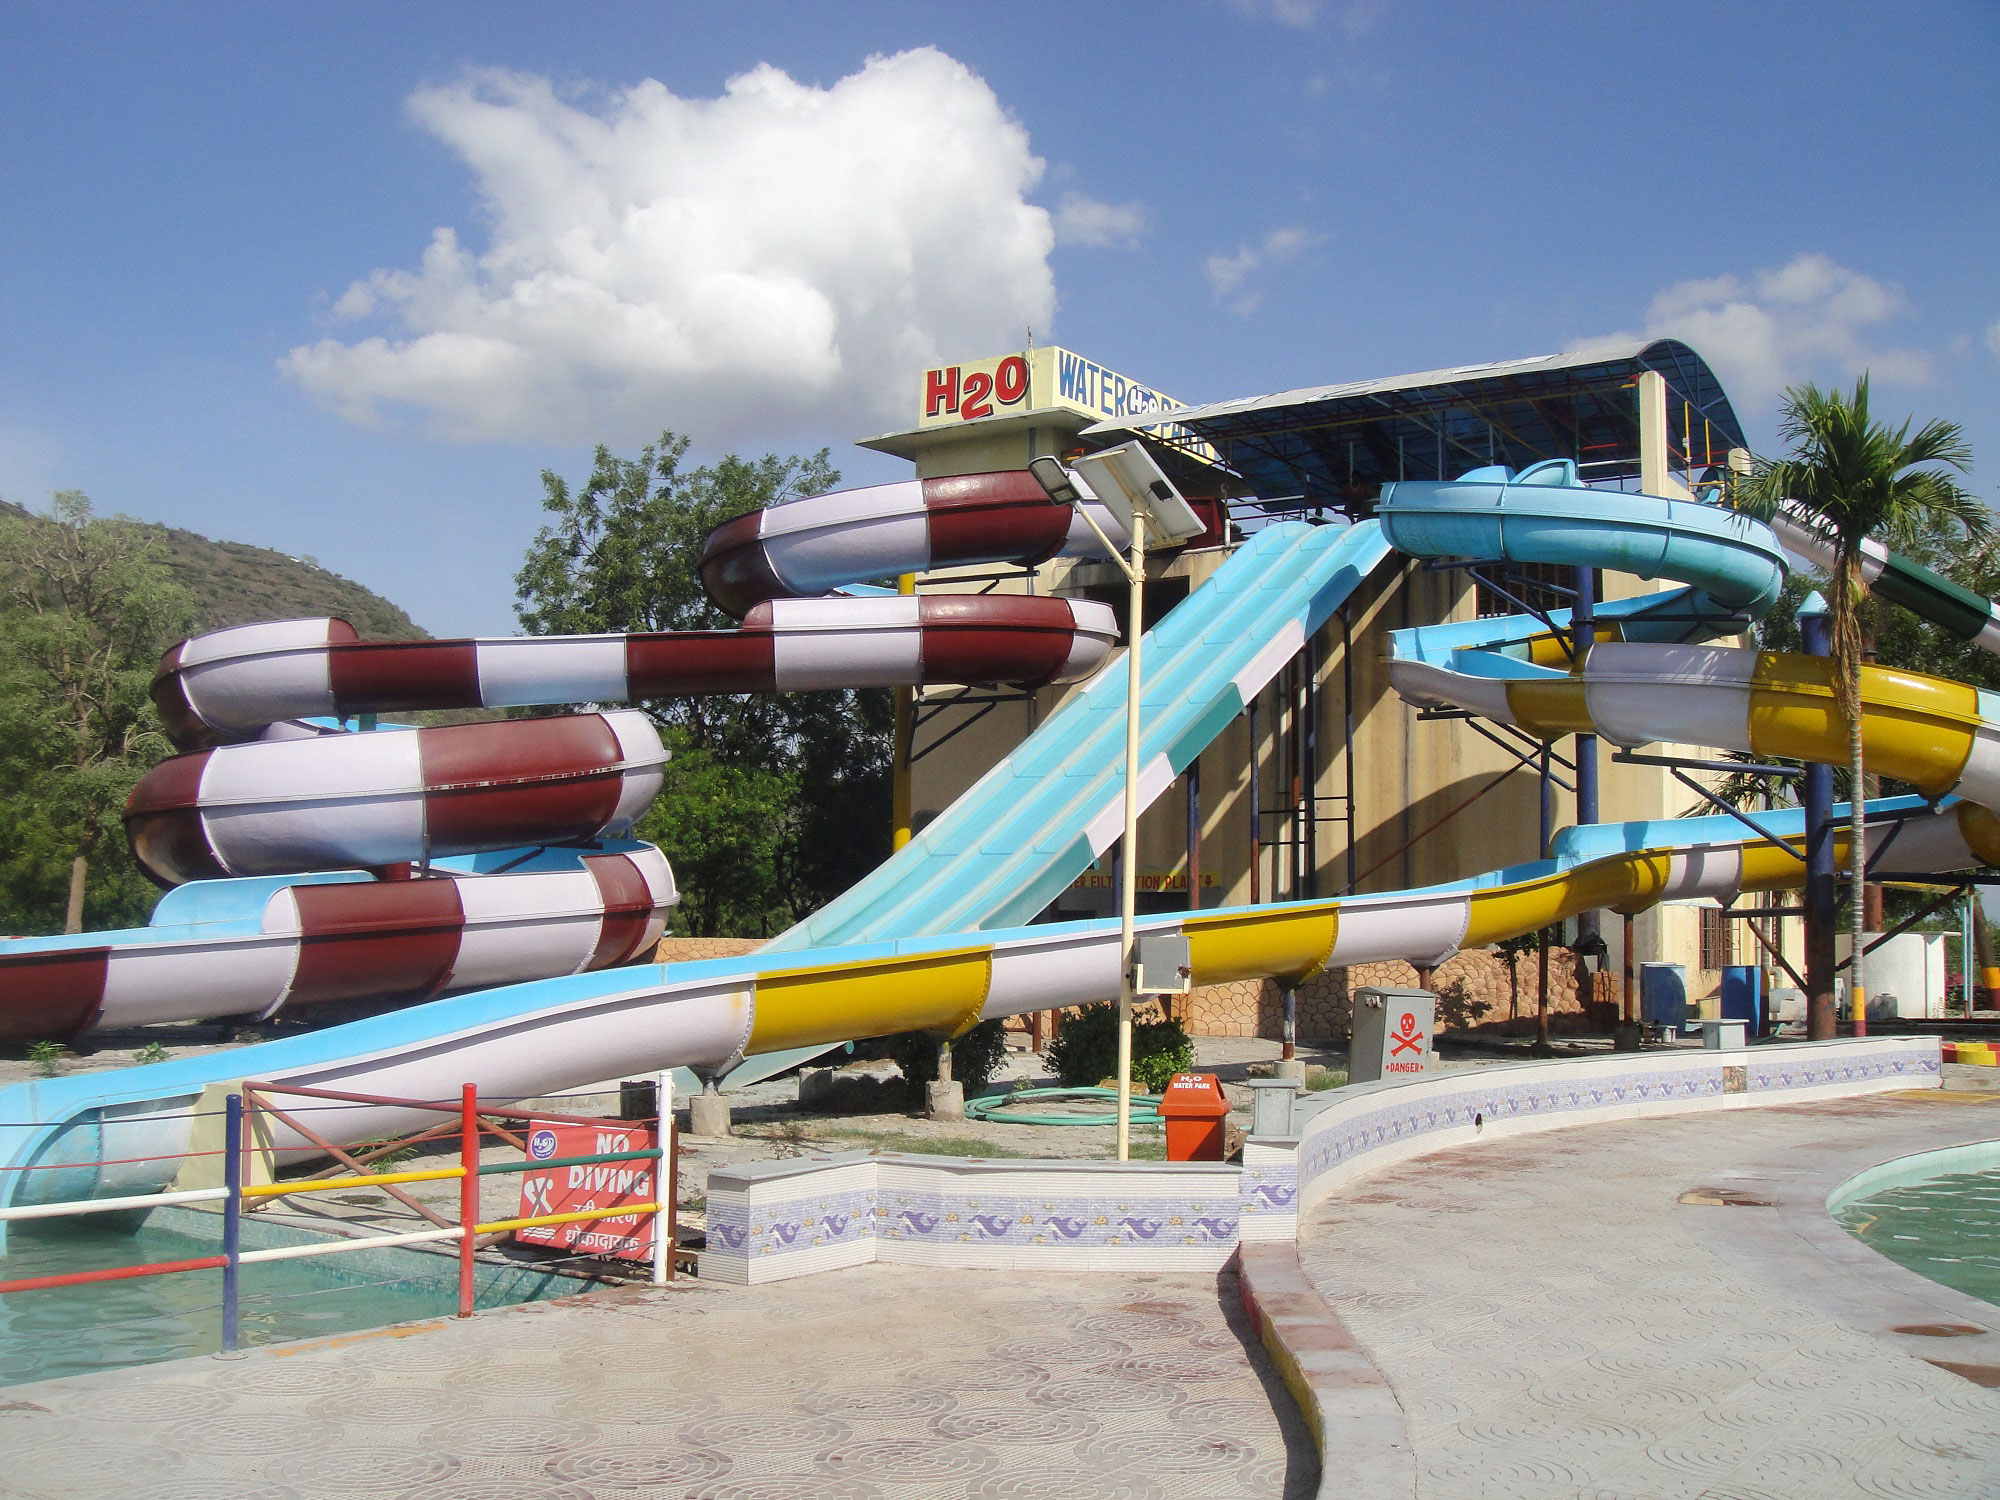 H2O Water Complex